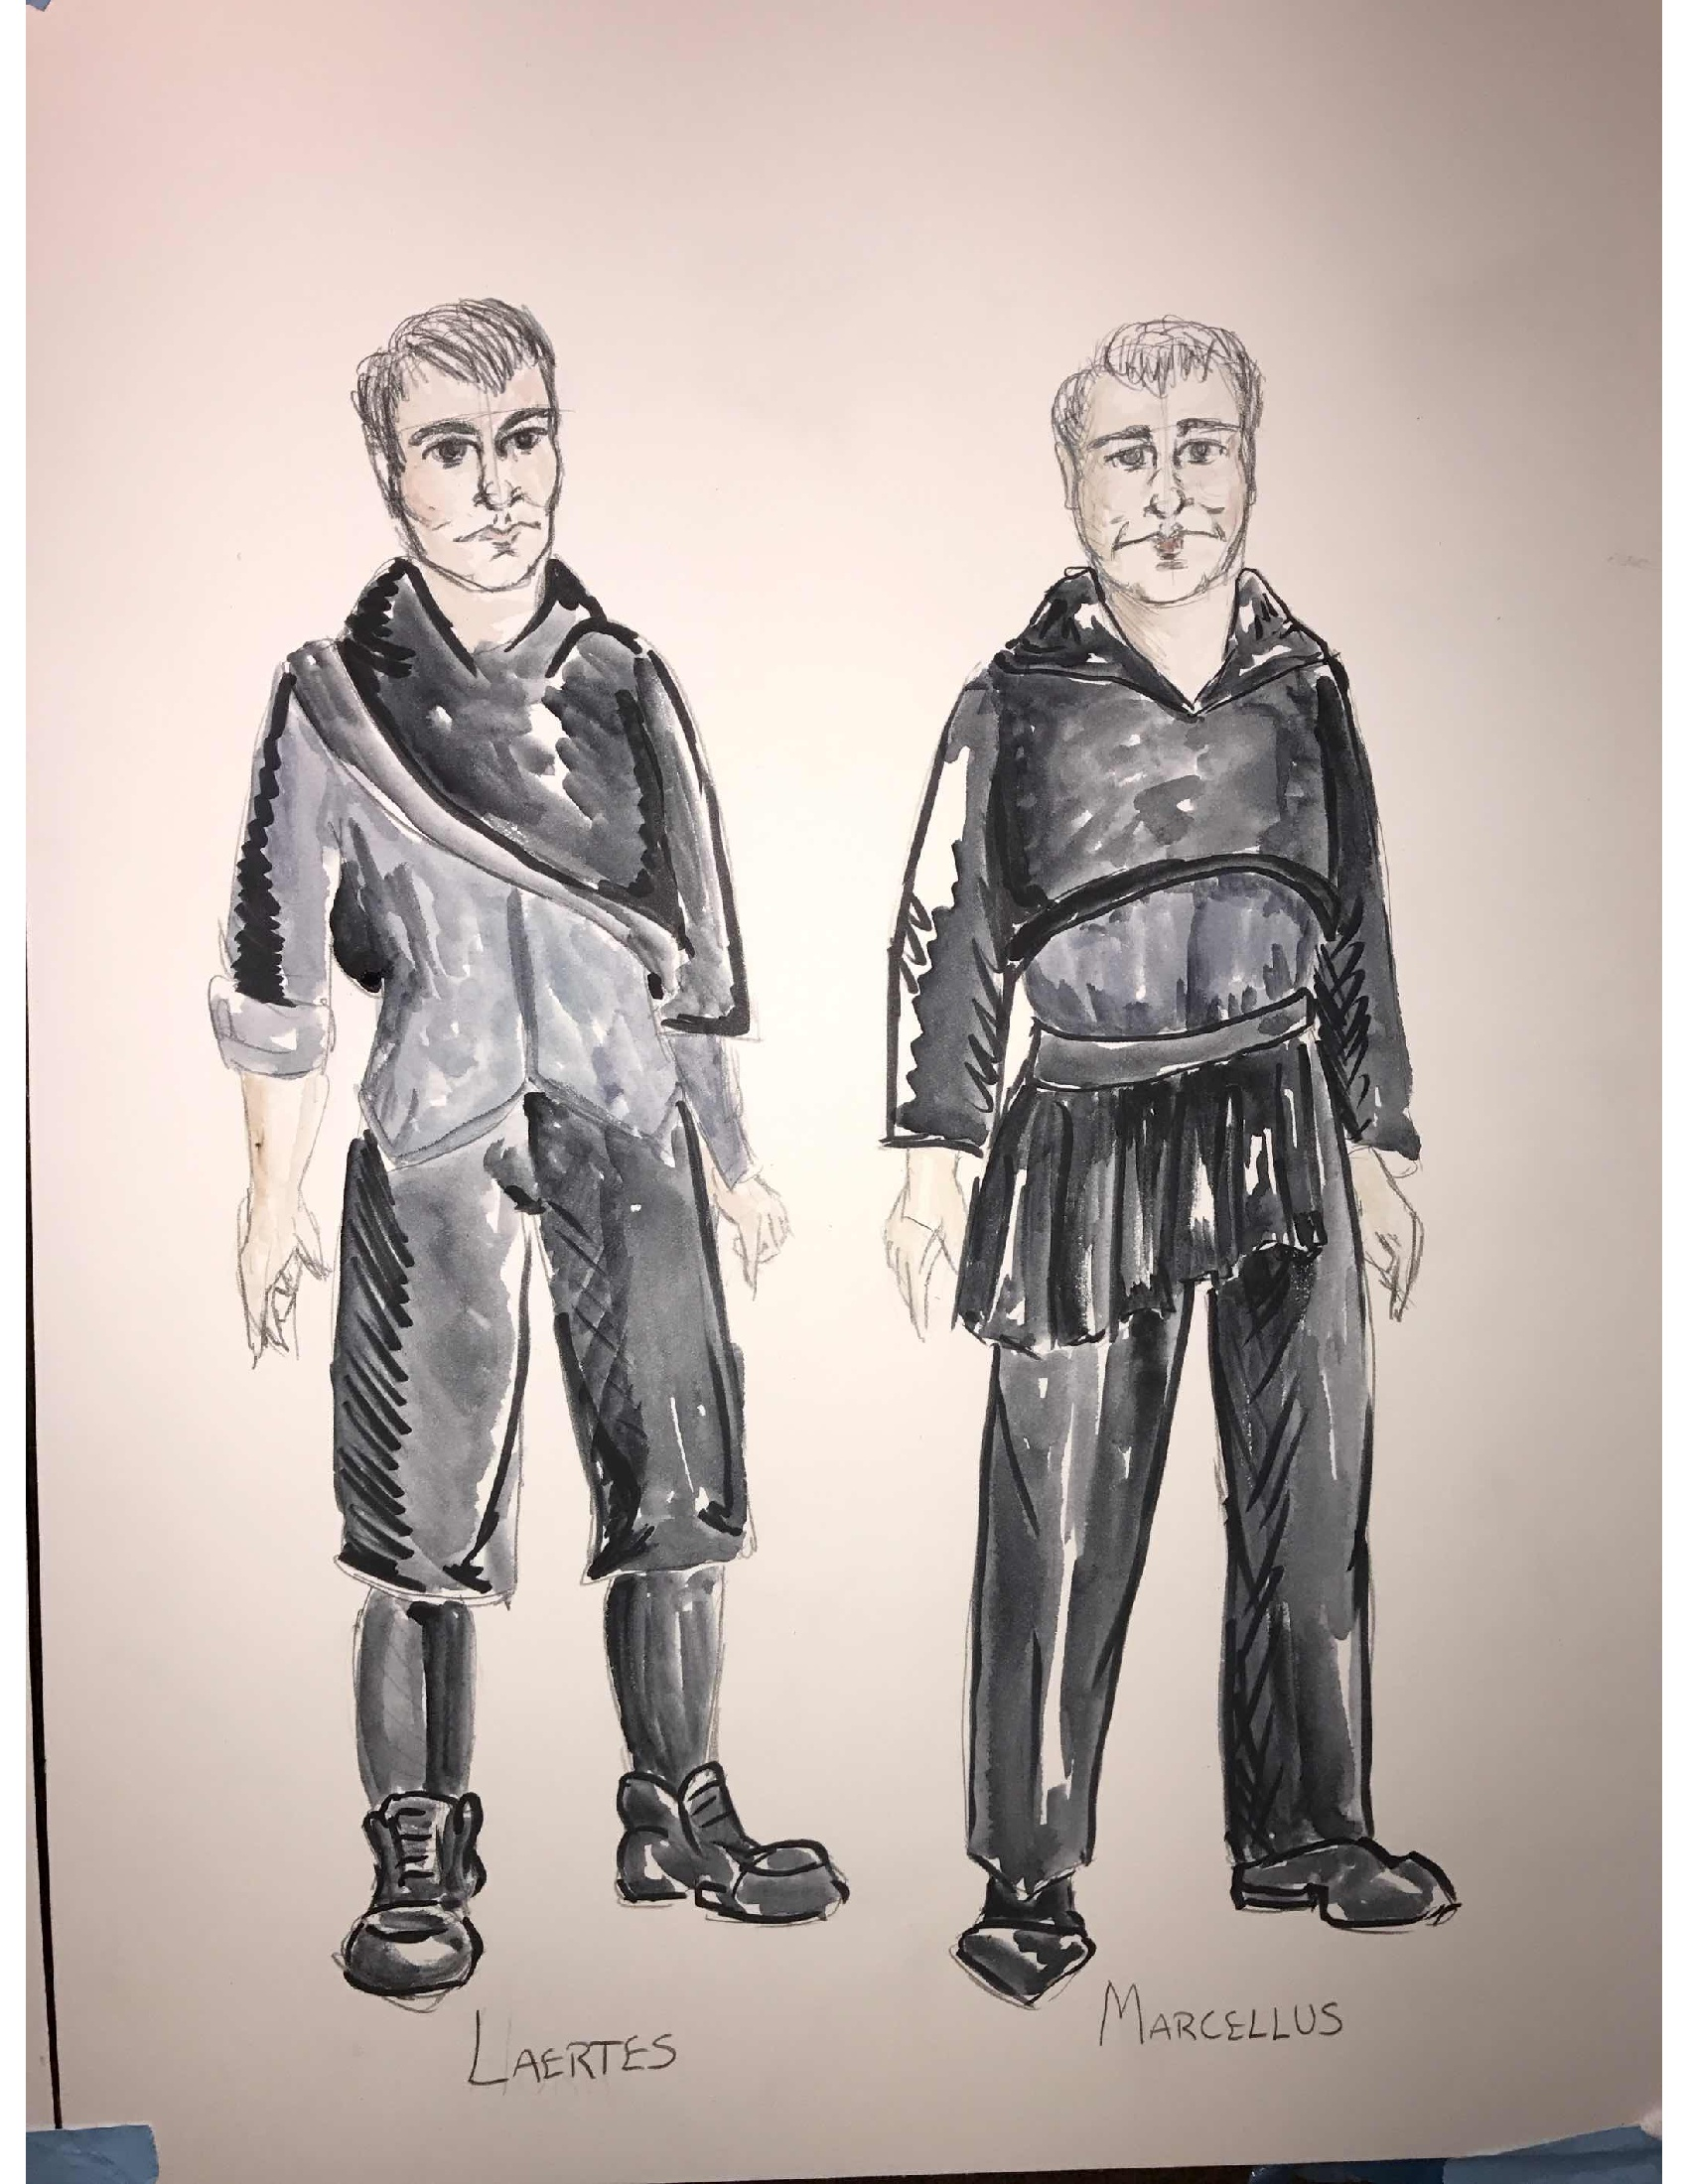 Whitaker's designs for Hamlet, the ghost, Laertes and Marcellus